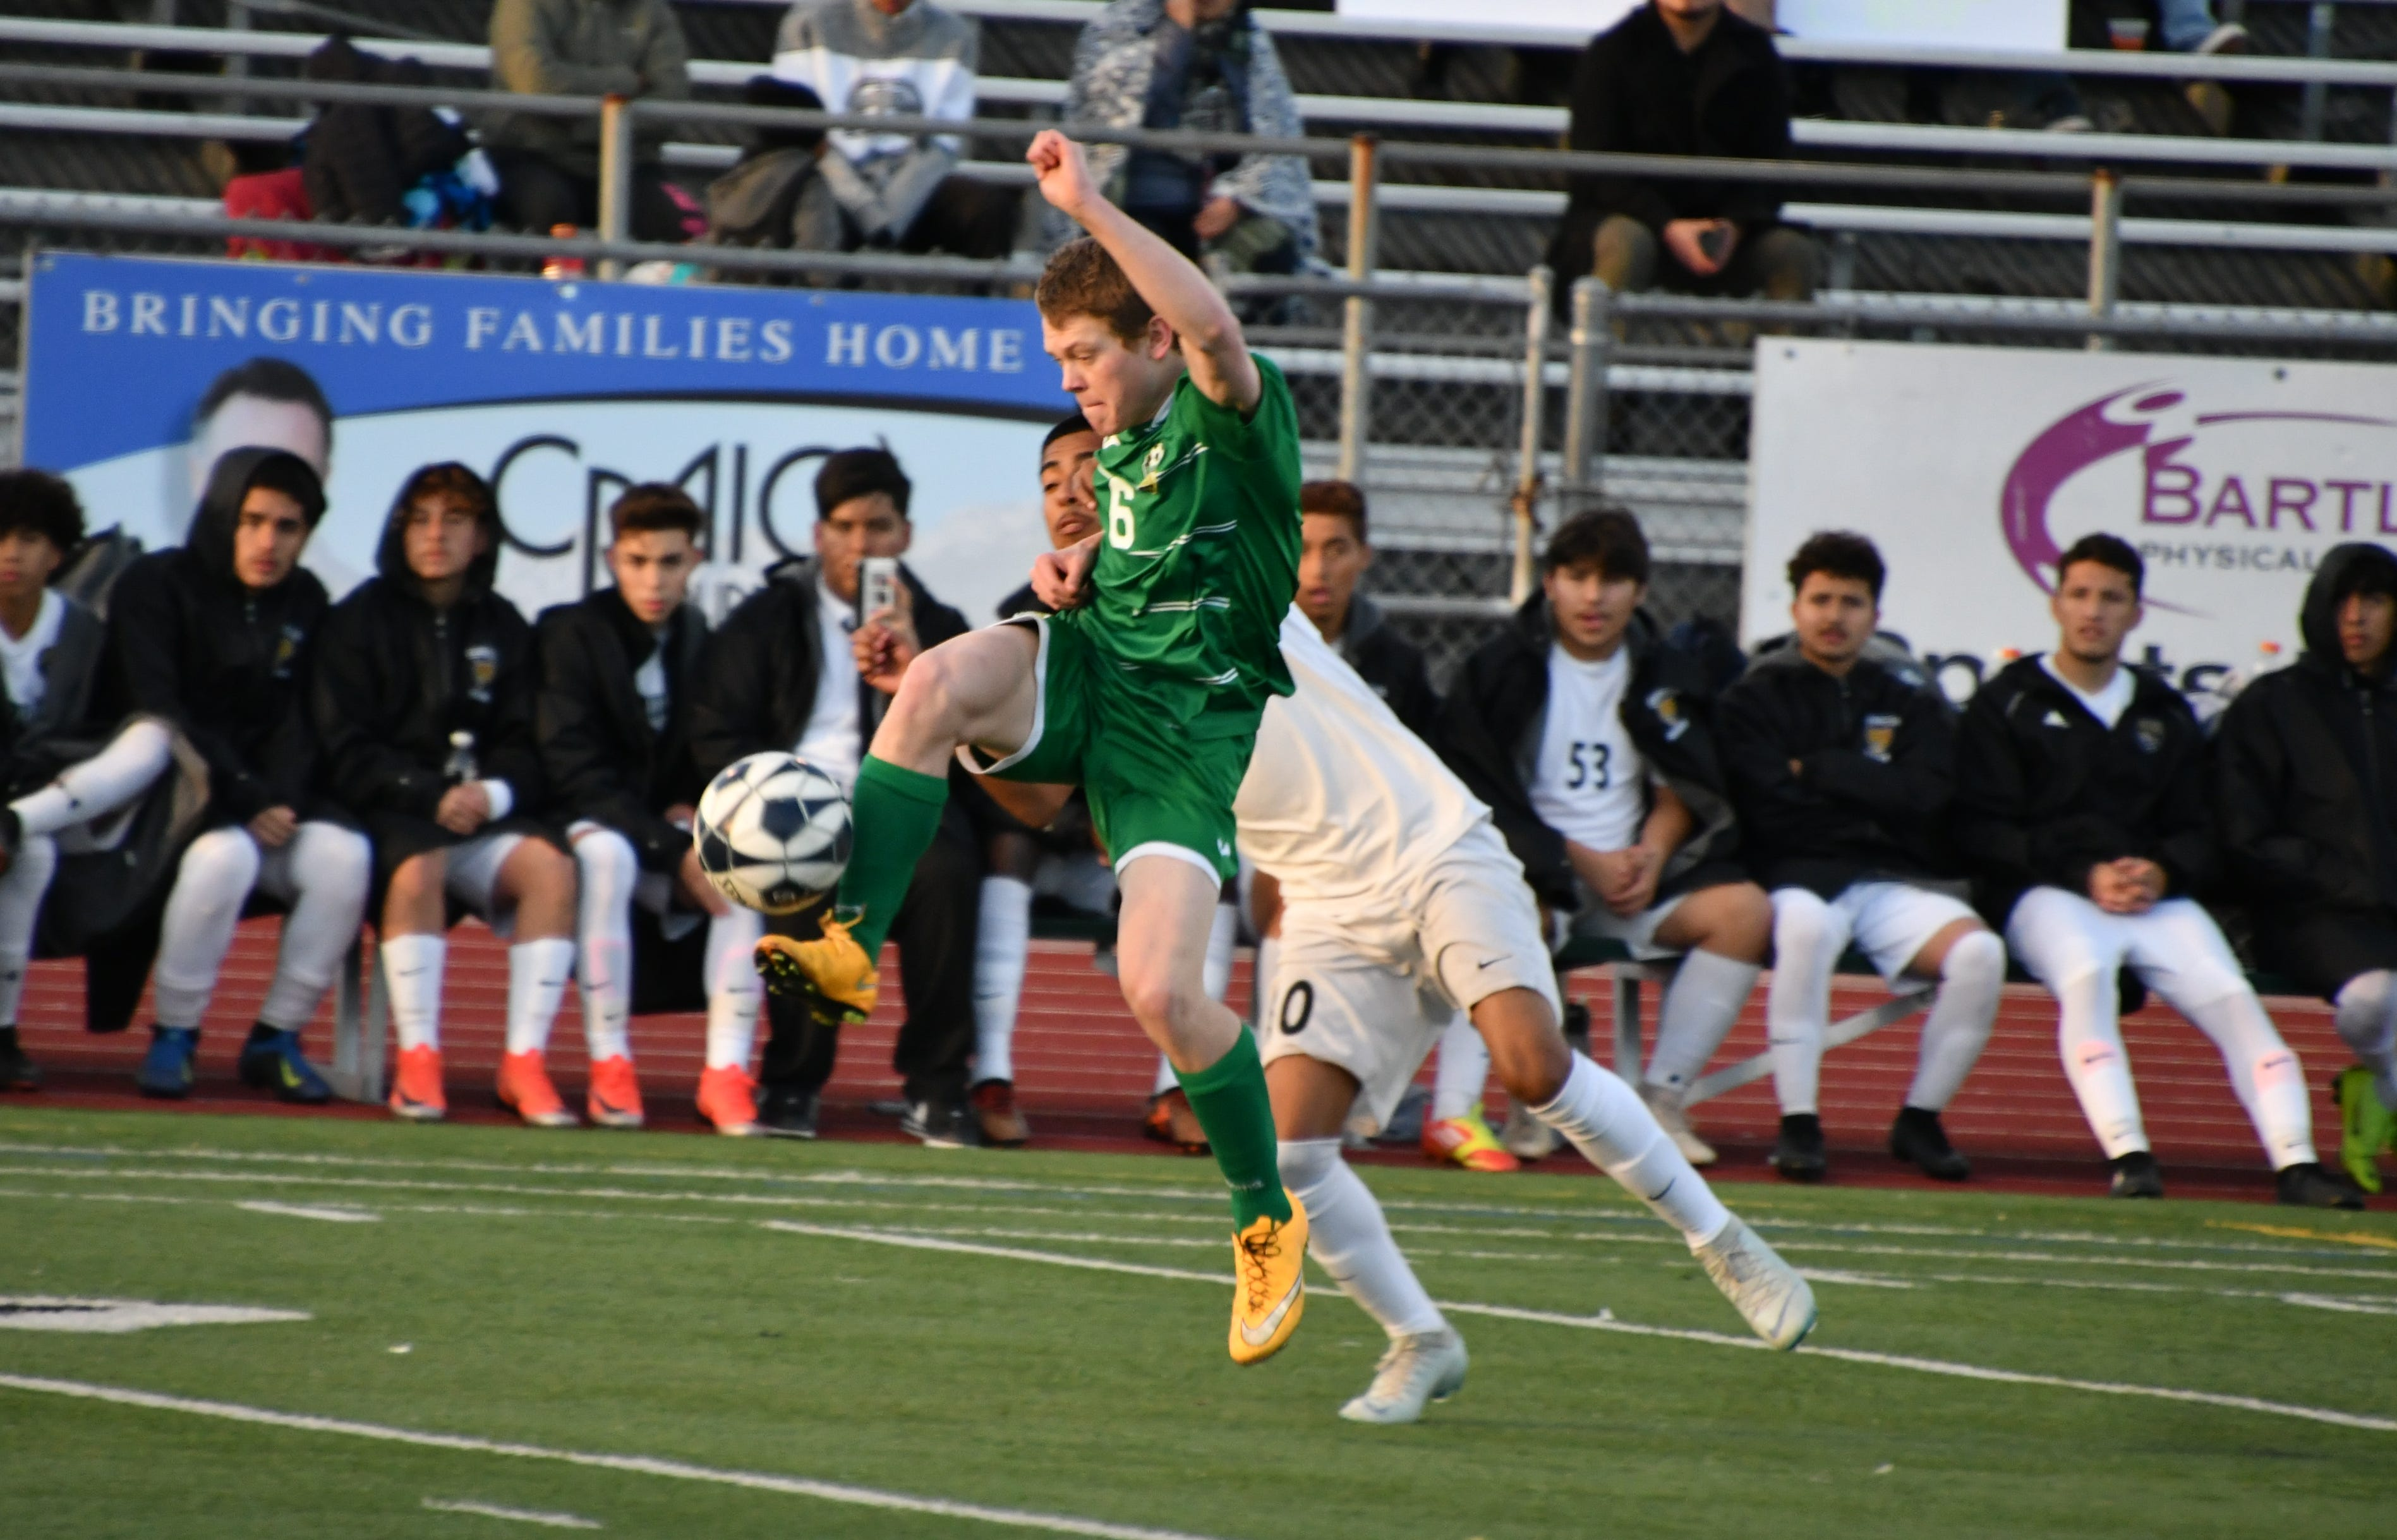 Thousand Oaks High's Jack Medley plays the ball against Long Beach-Cabrillo on Saturday night In the second round of the CIF-Southern Section Division 2 playoffs in Thousand Oaks. Cabrillo won, 2-0.